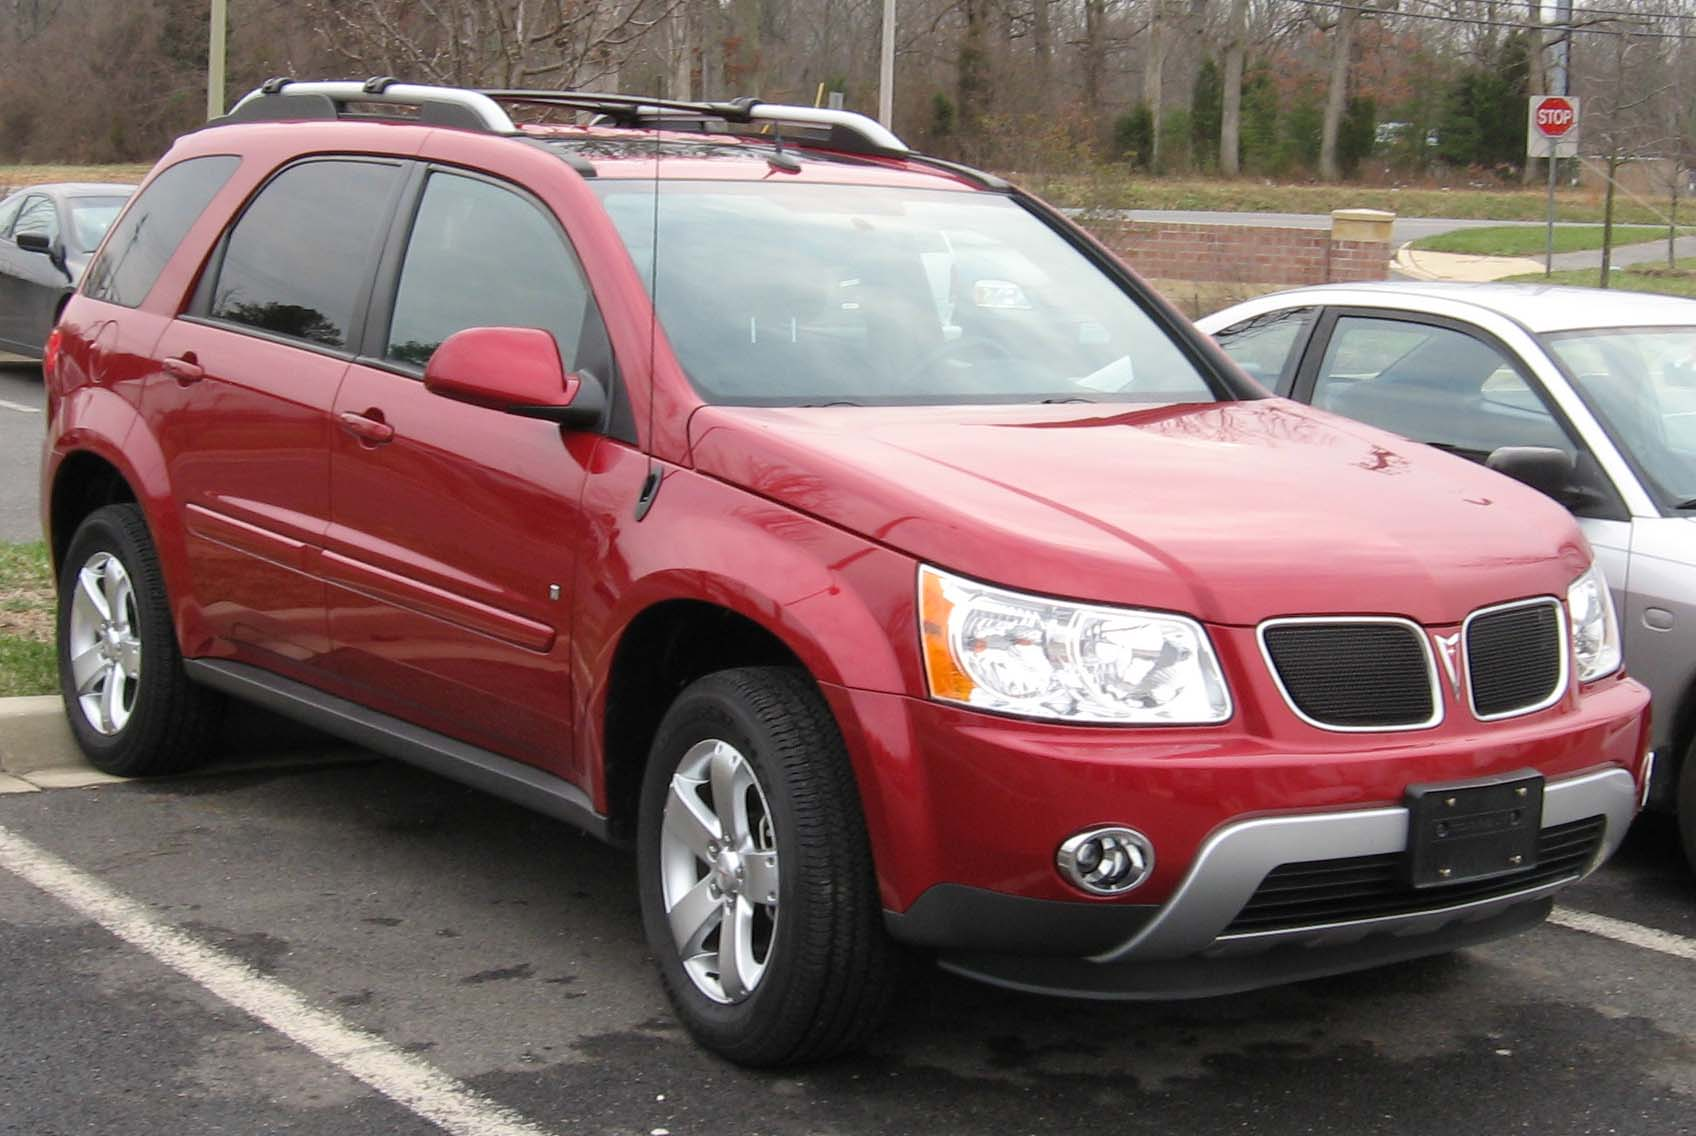 File:06-07 Pontiac Torrent.jpg